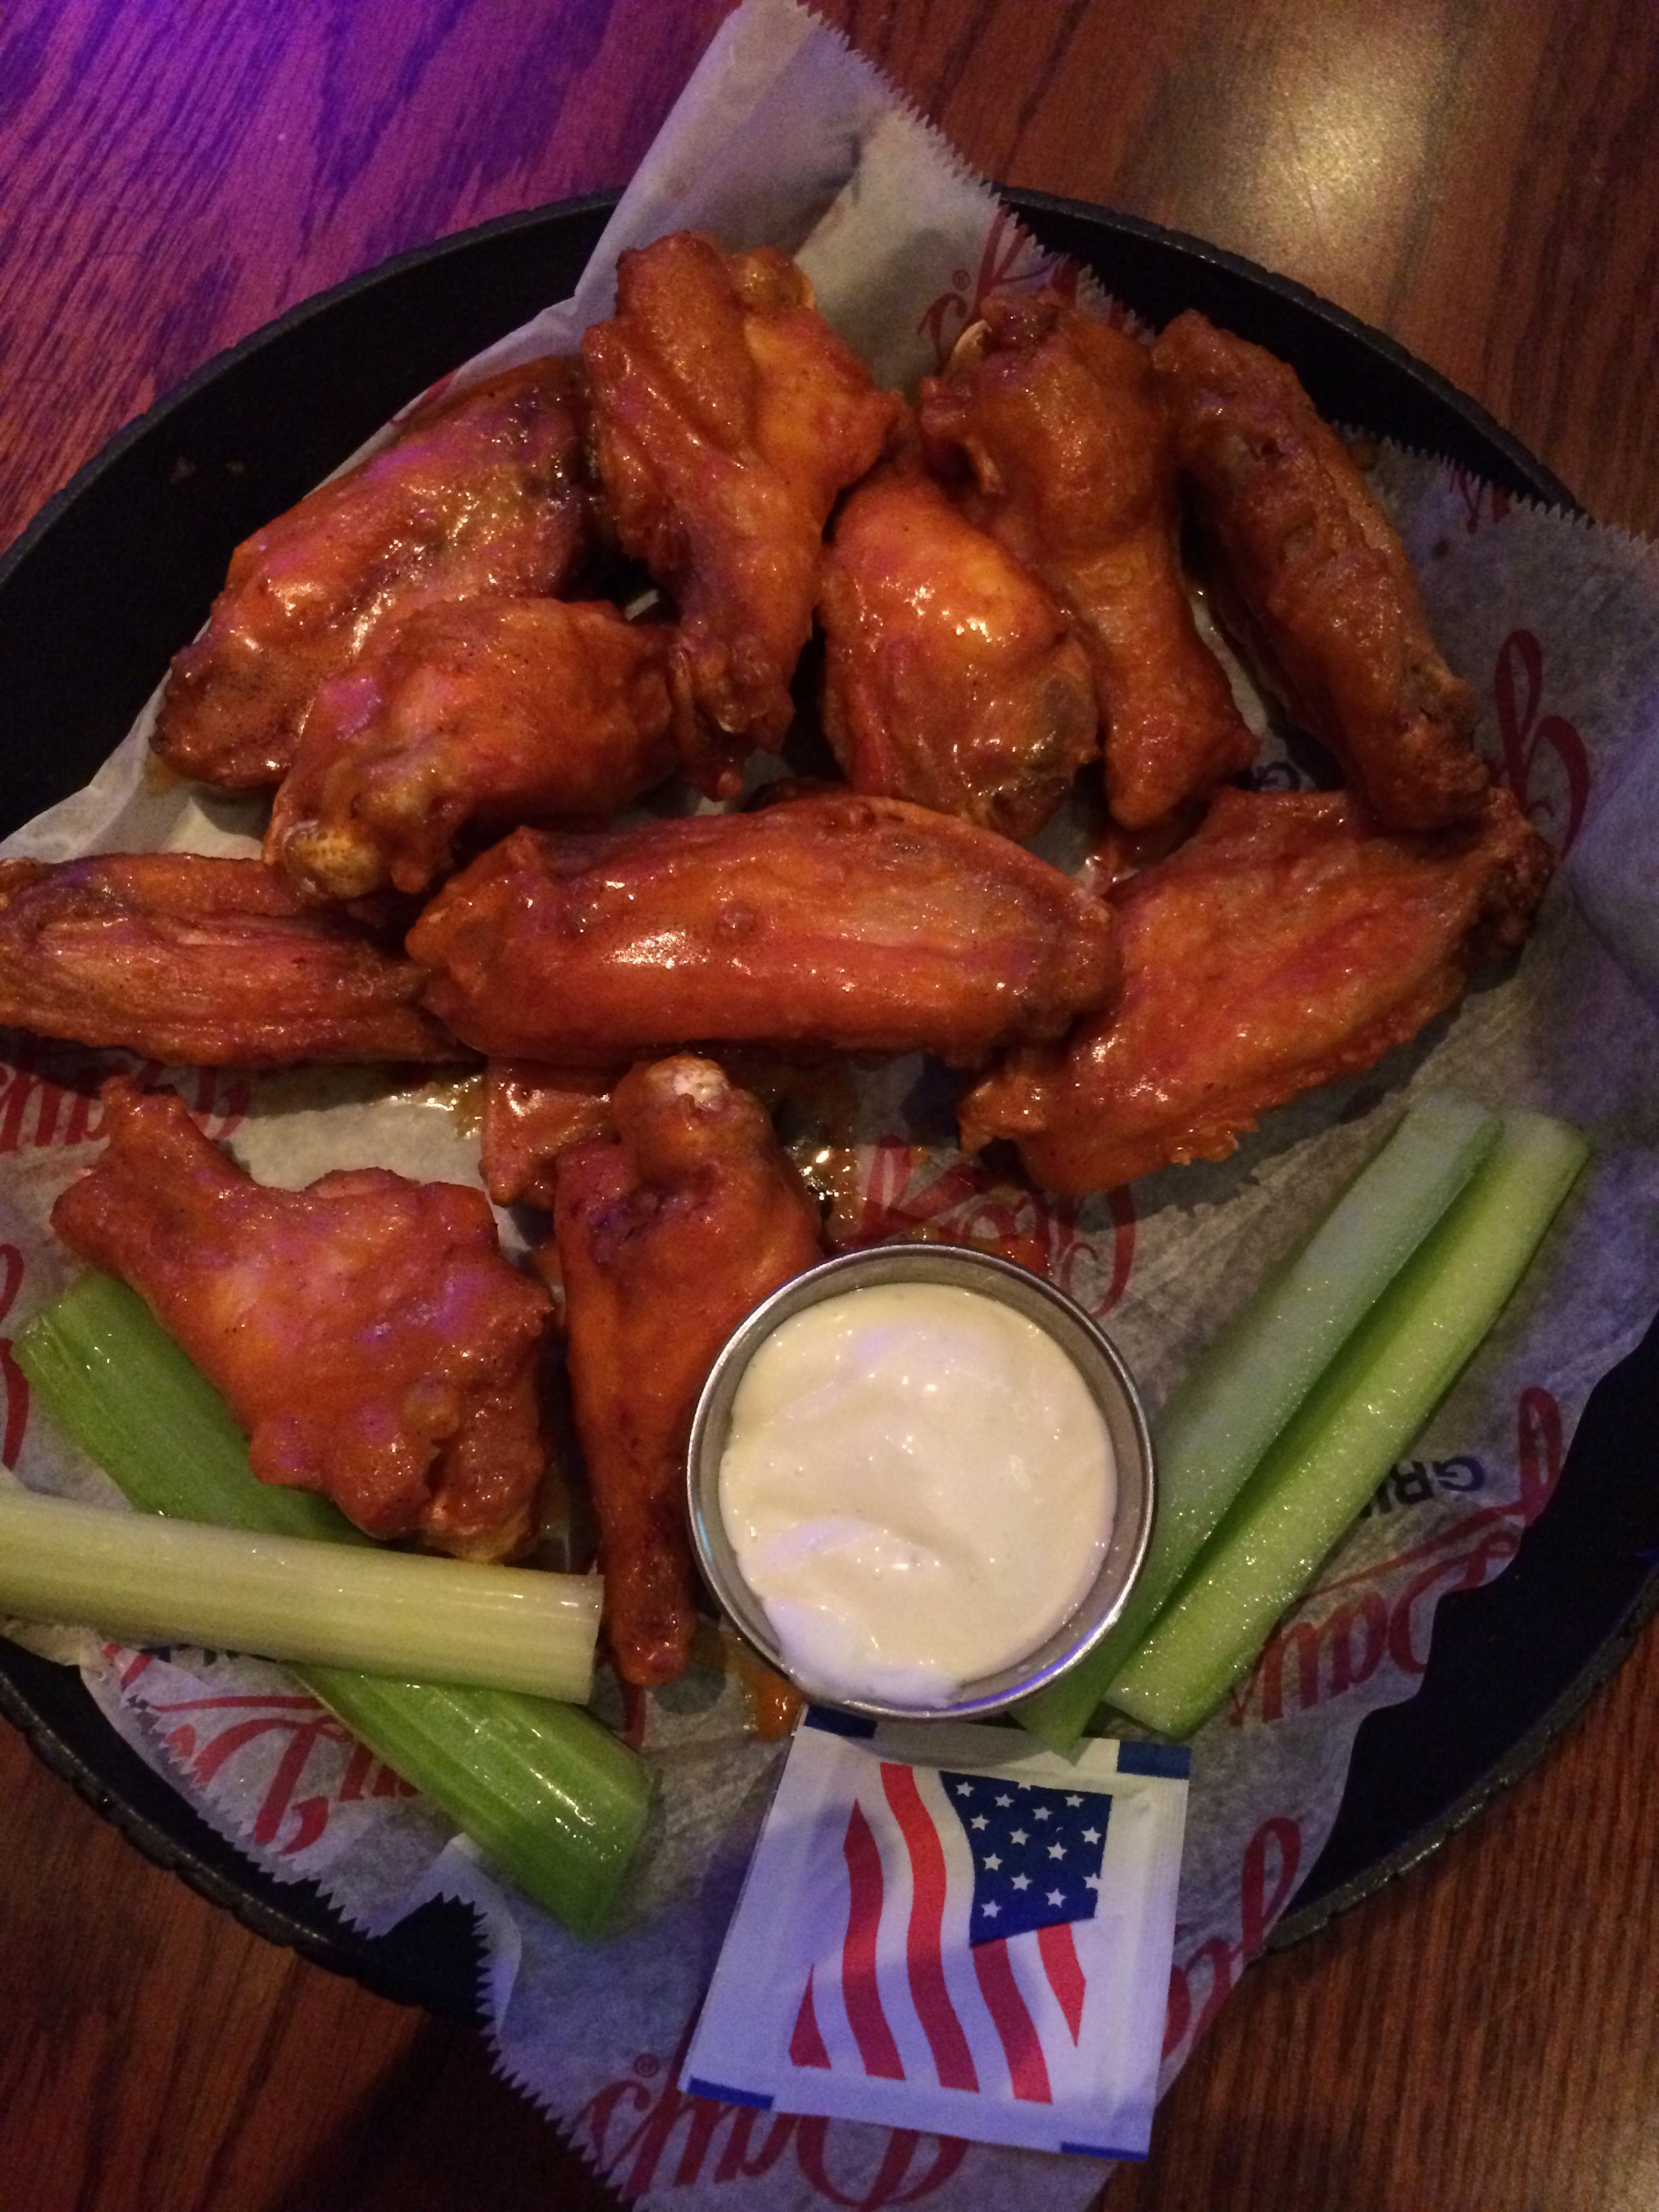 Buffalo Chicken Wings With Celery And Blue Cheese Dressing From Glory Days Eldersburg Md Food Good Food Yummy Food